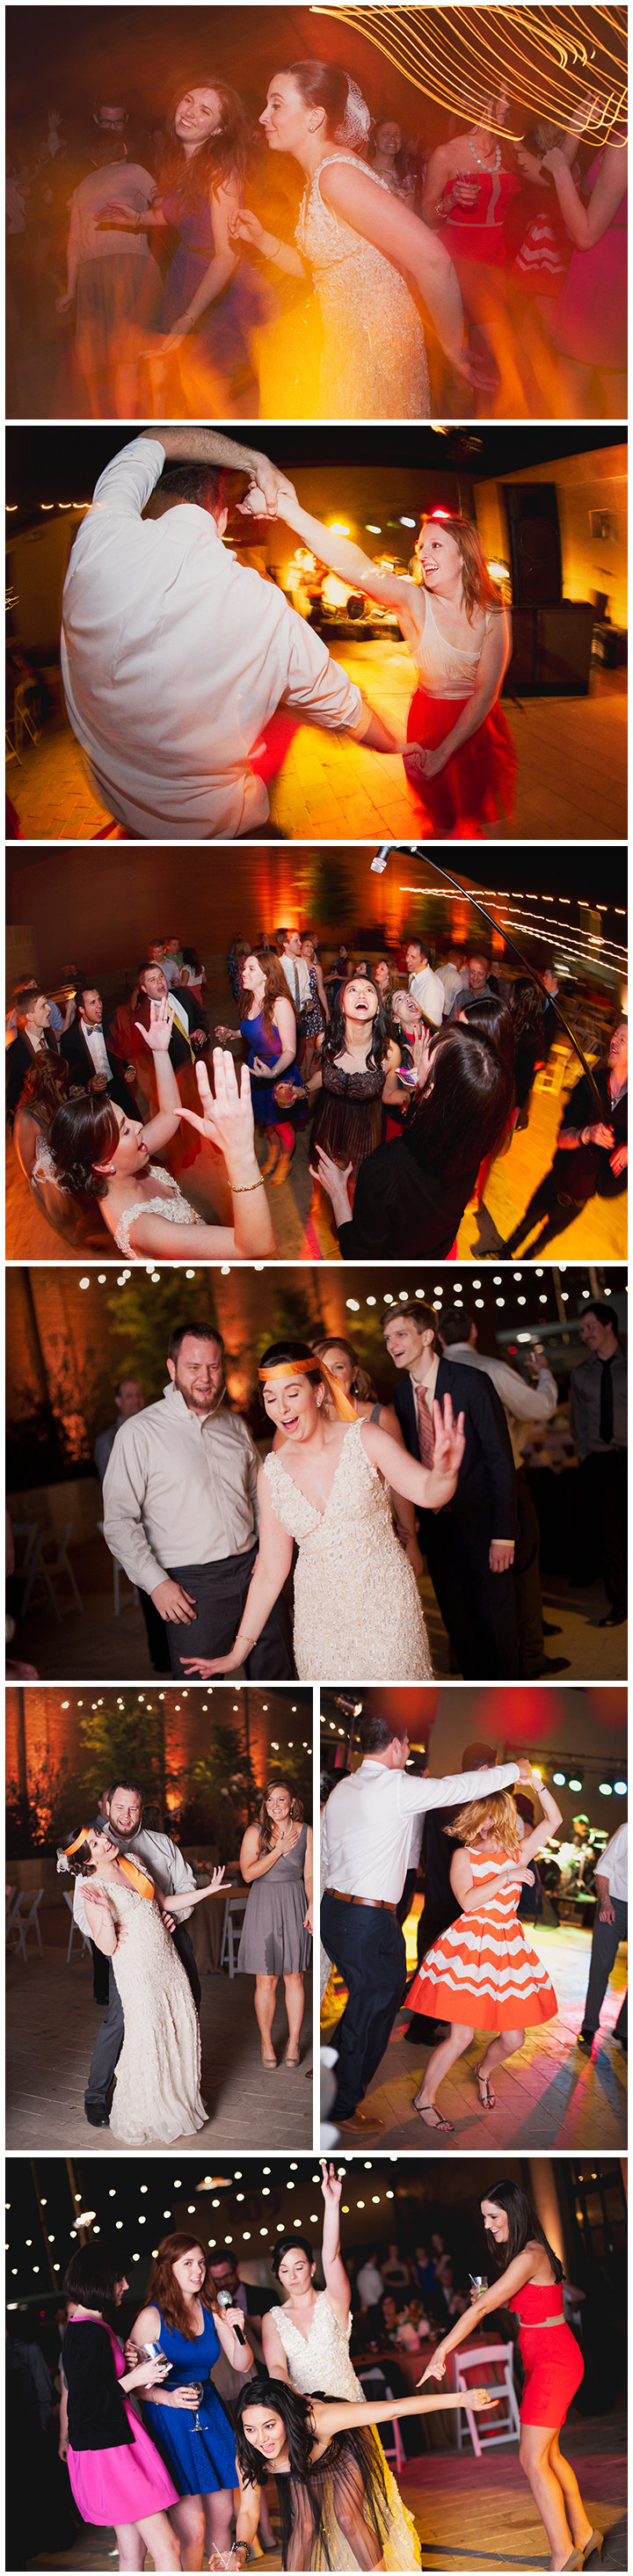 weddings at 809 vickery fort worth